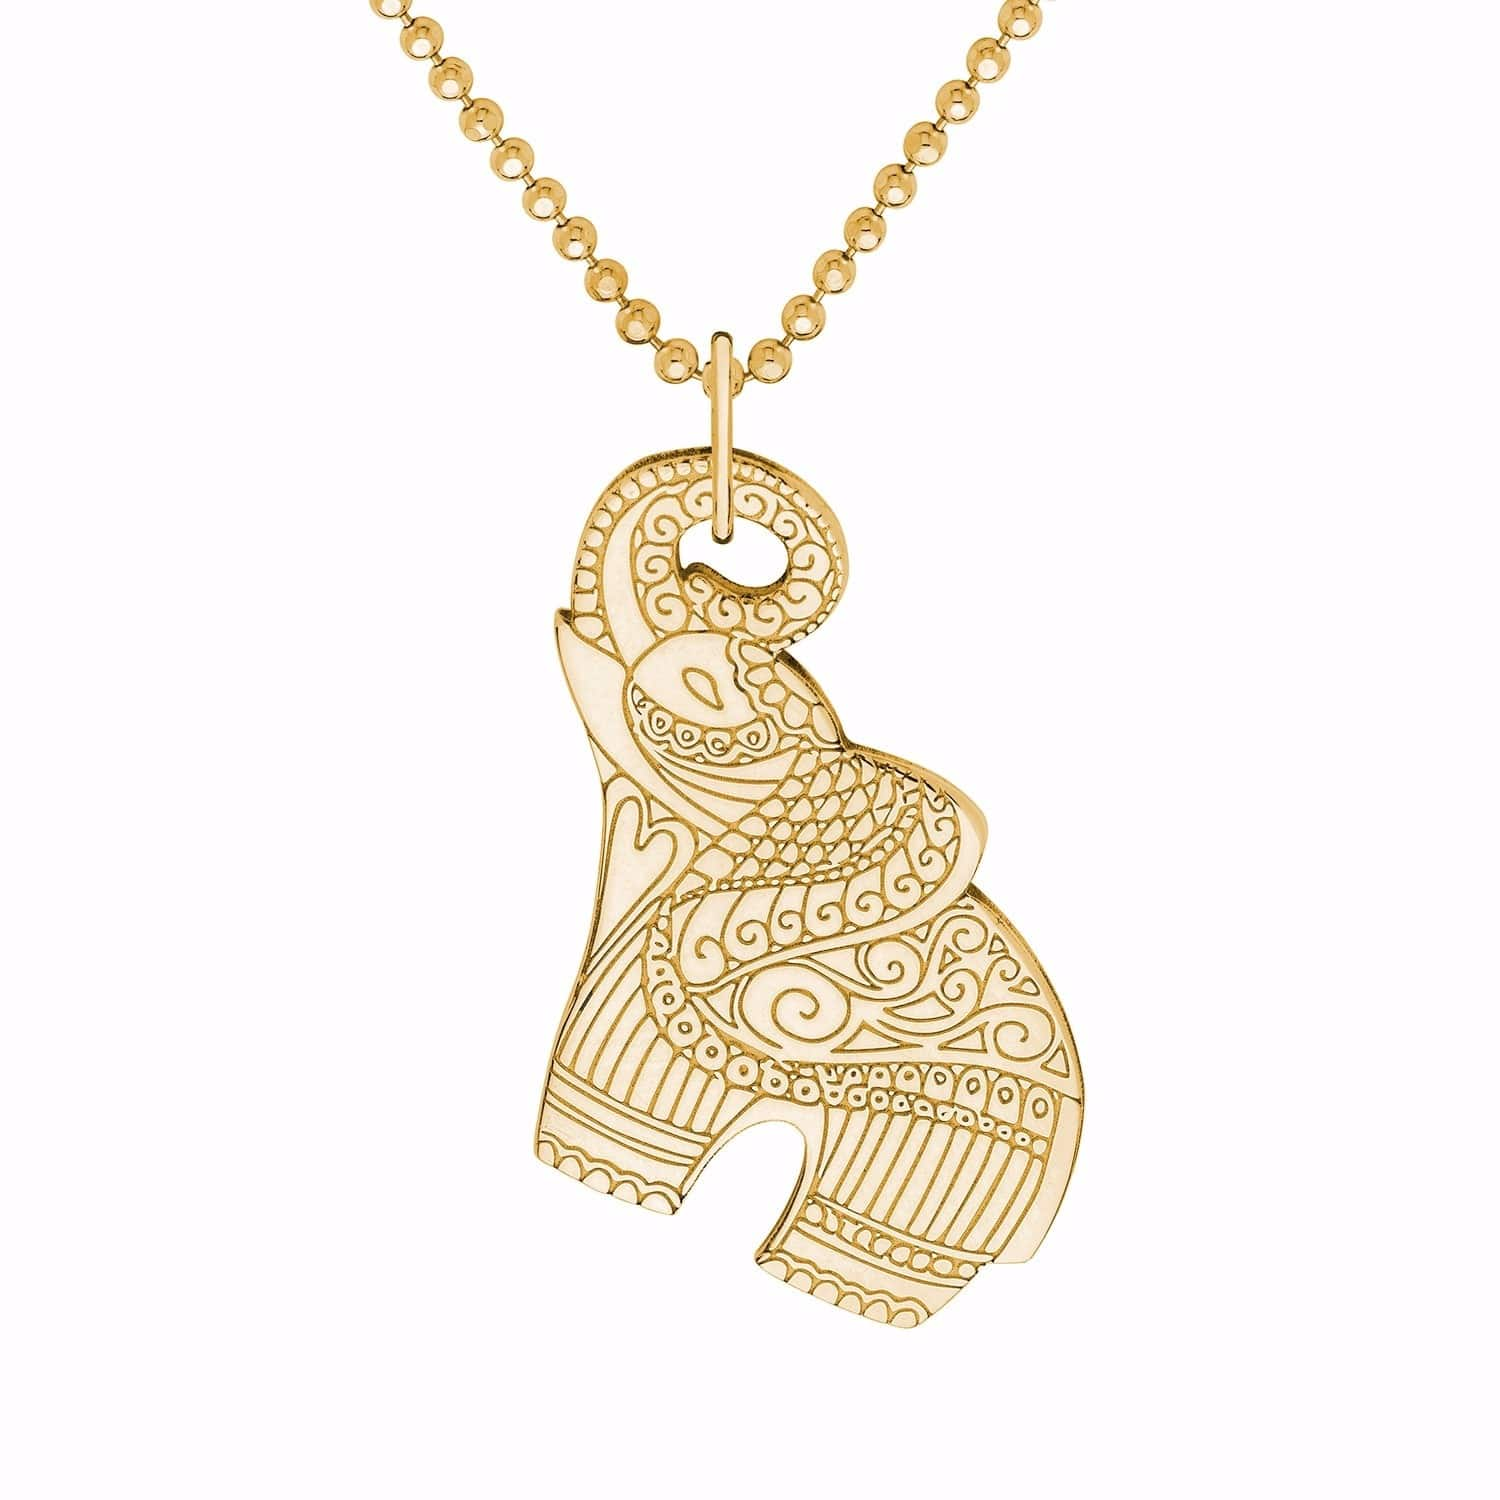 Gold elephant pendant necklace cartergore wolf badger gold elephant pendant necklace image aloadofball Gallery